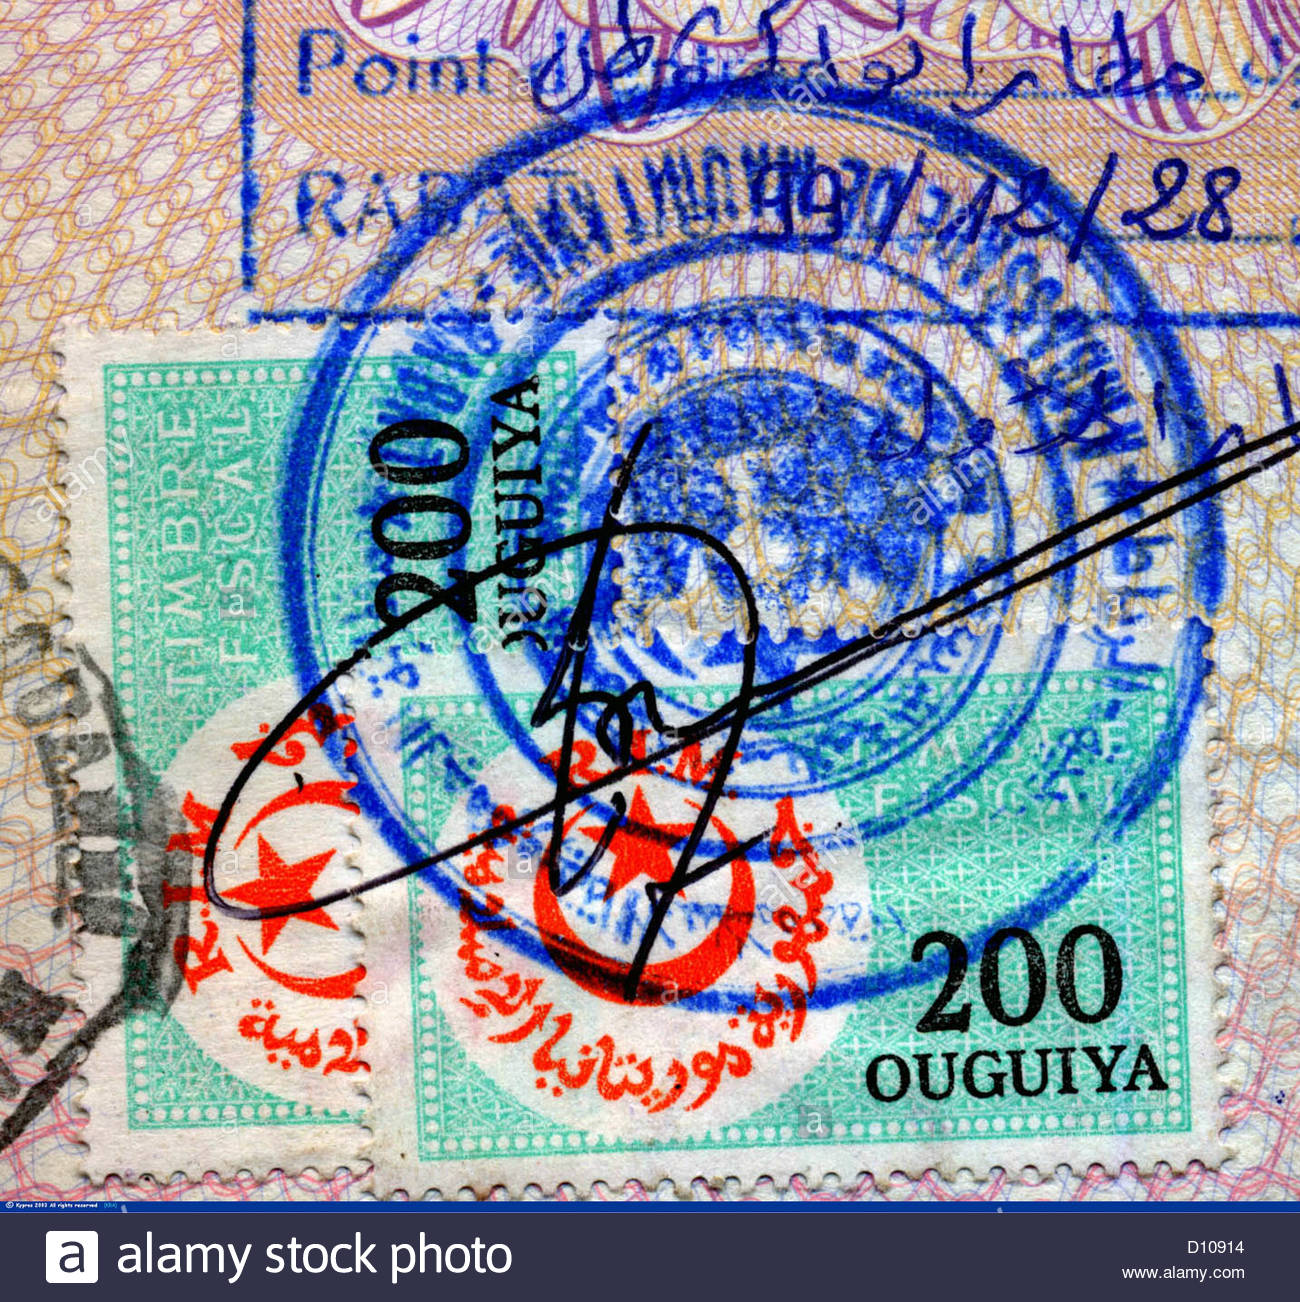 Islamic Republic Of Mauritania Stock Photos & Islamic Republic Of ...